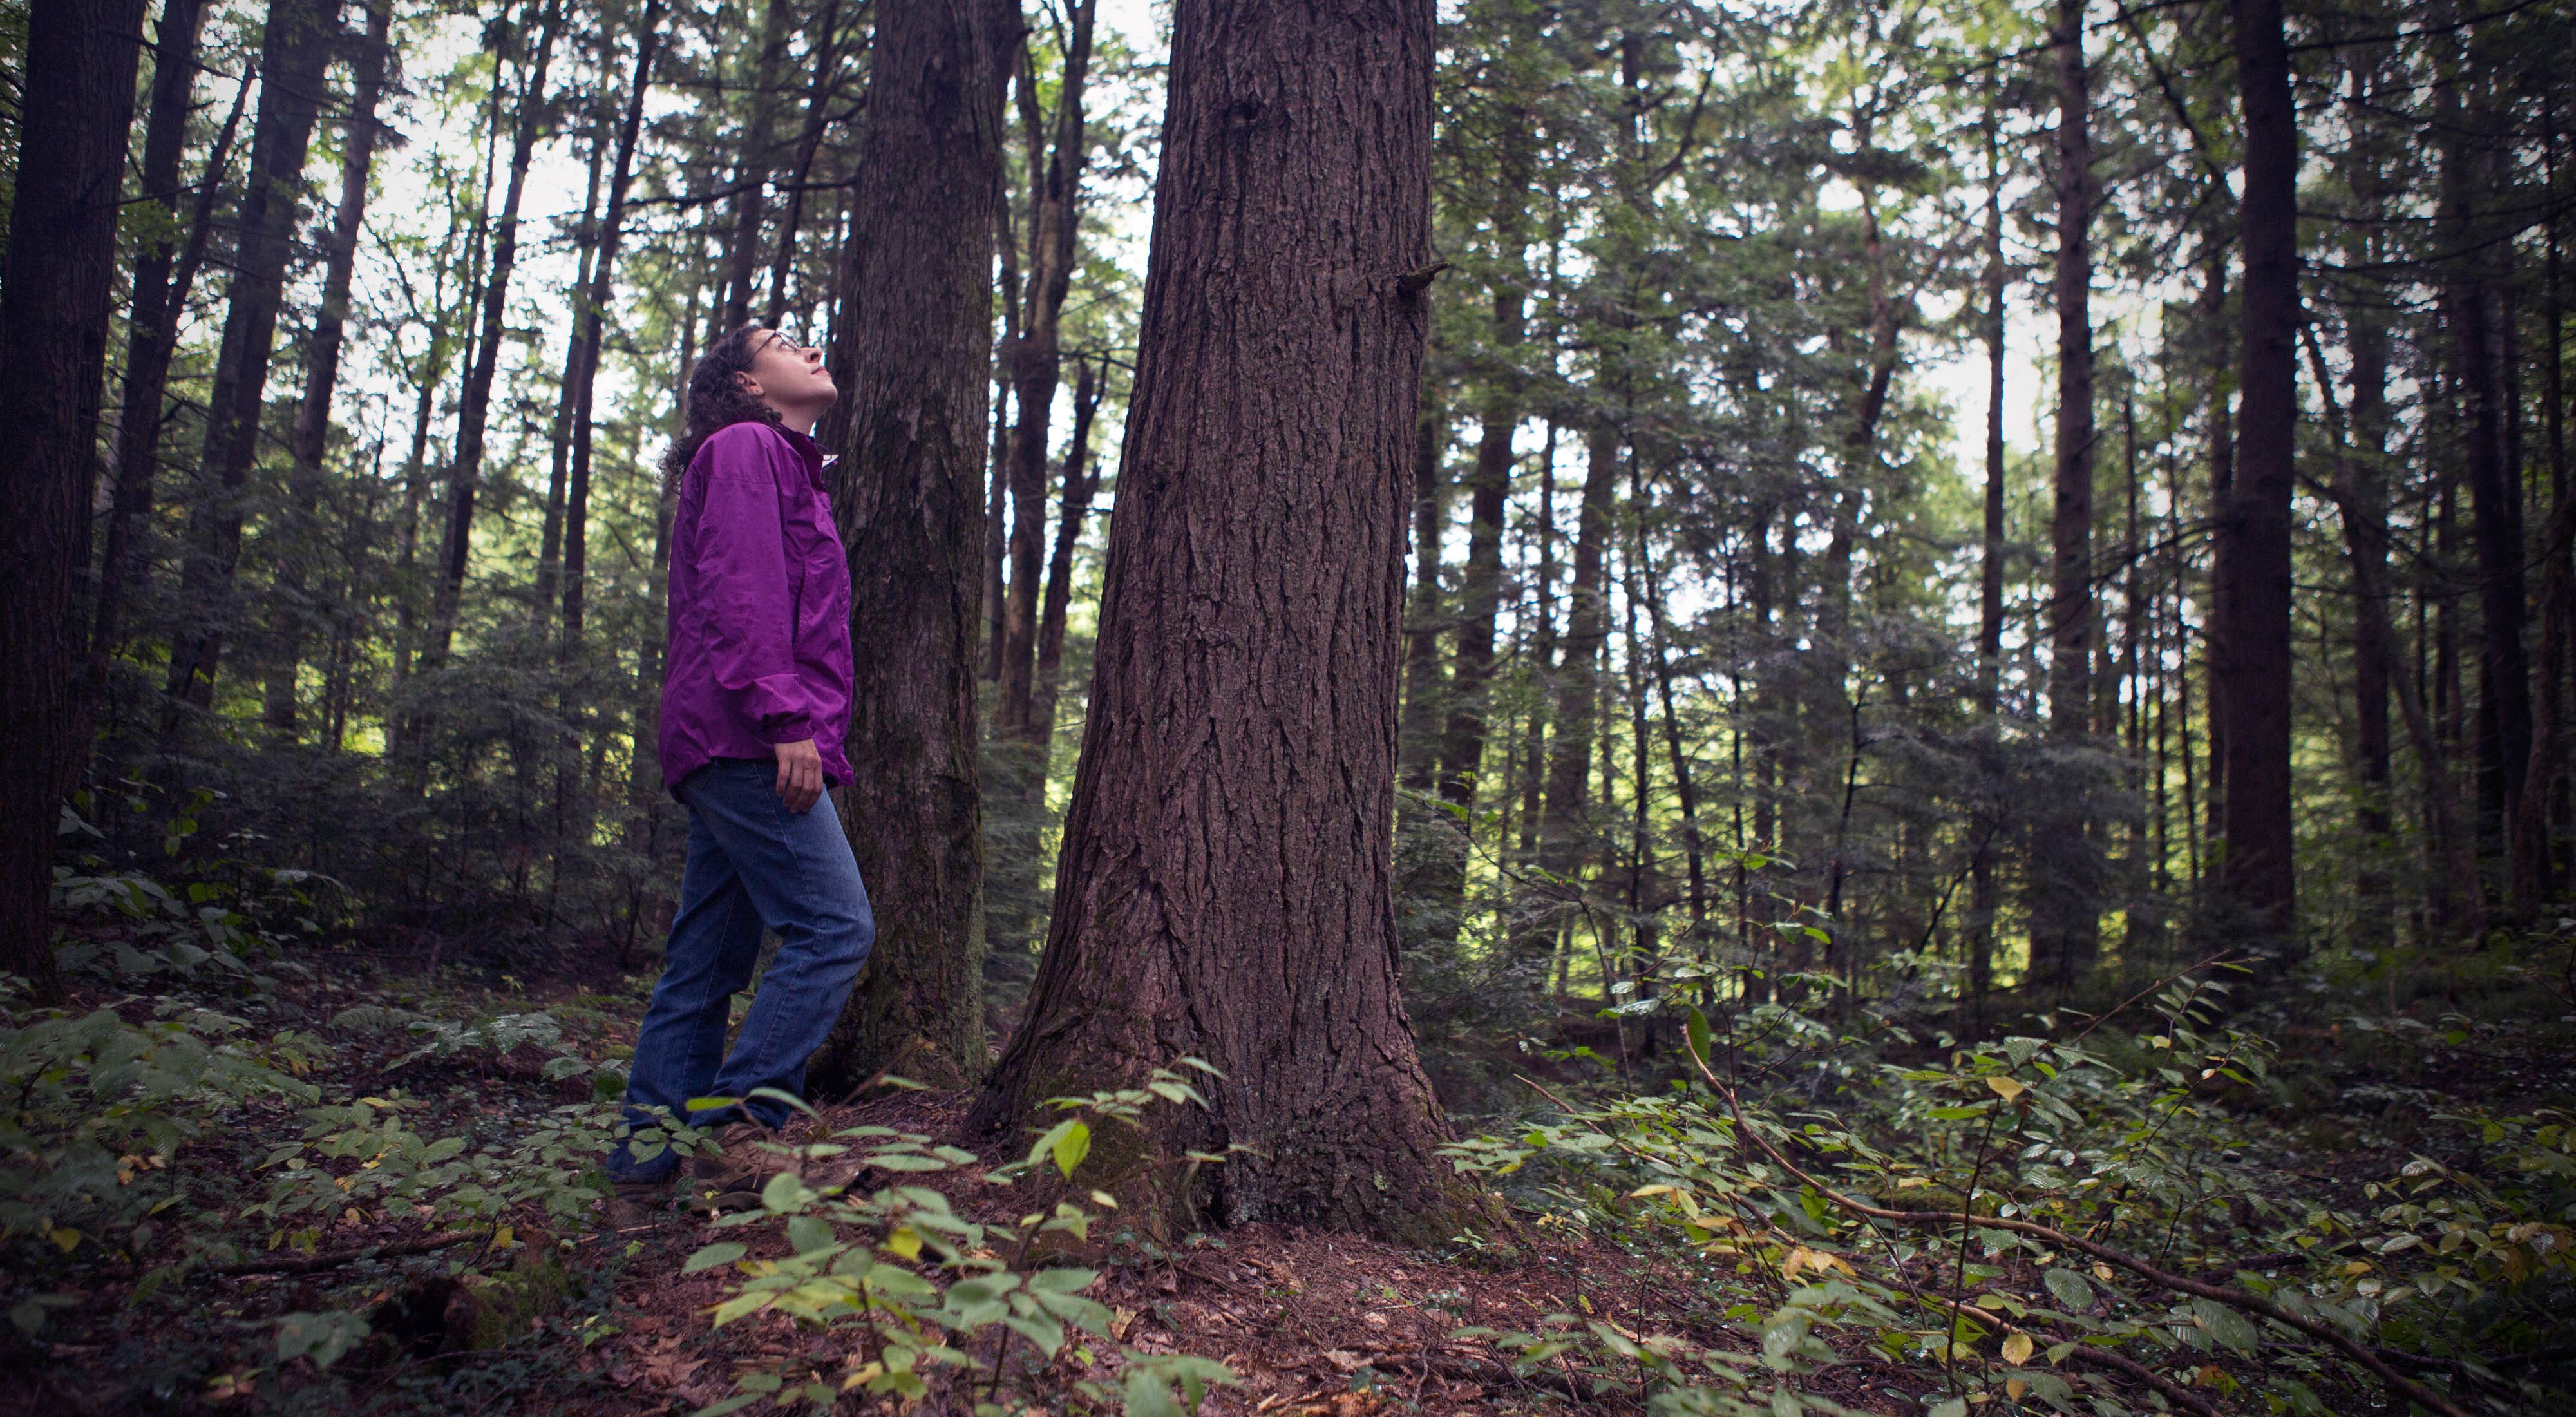 A woman stands in the forest, looking up at the trees